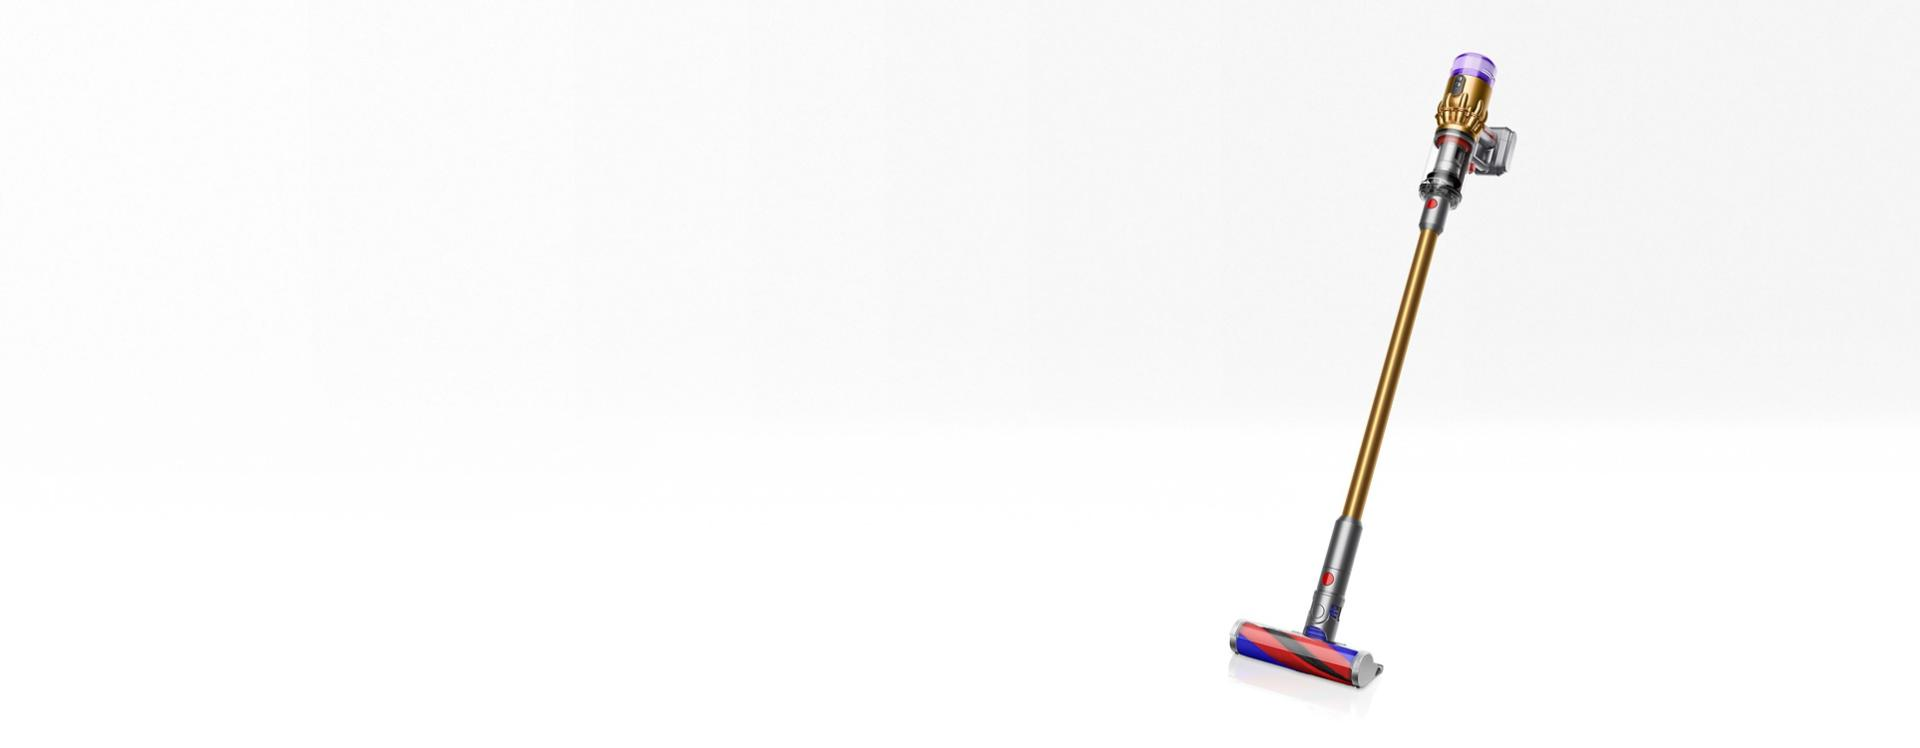 Dyson Micro 1.5kg™ vacuum at different angles